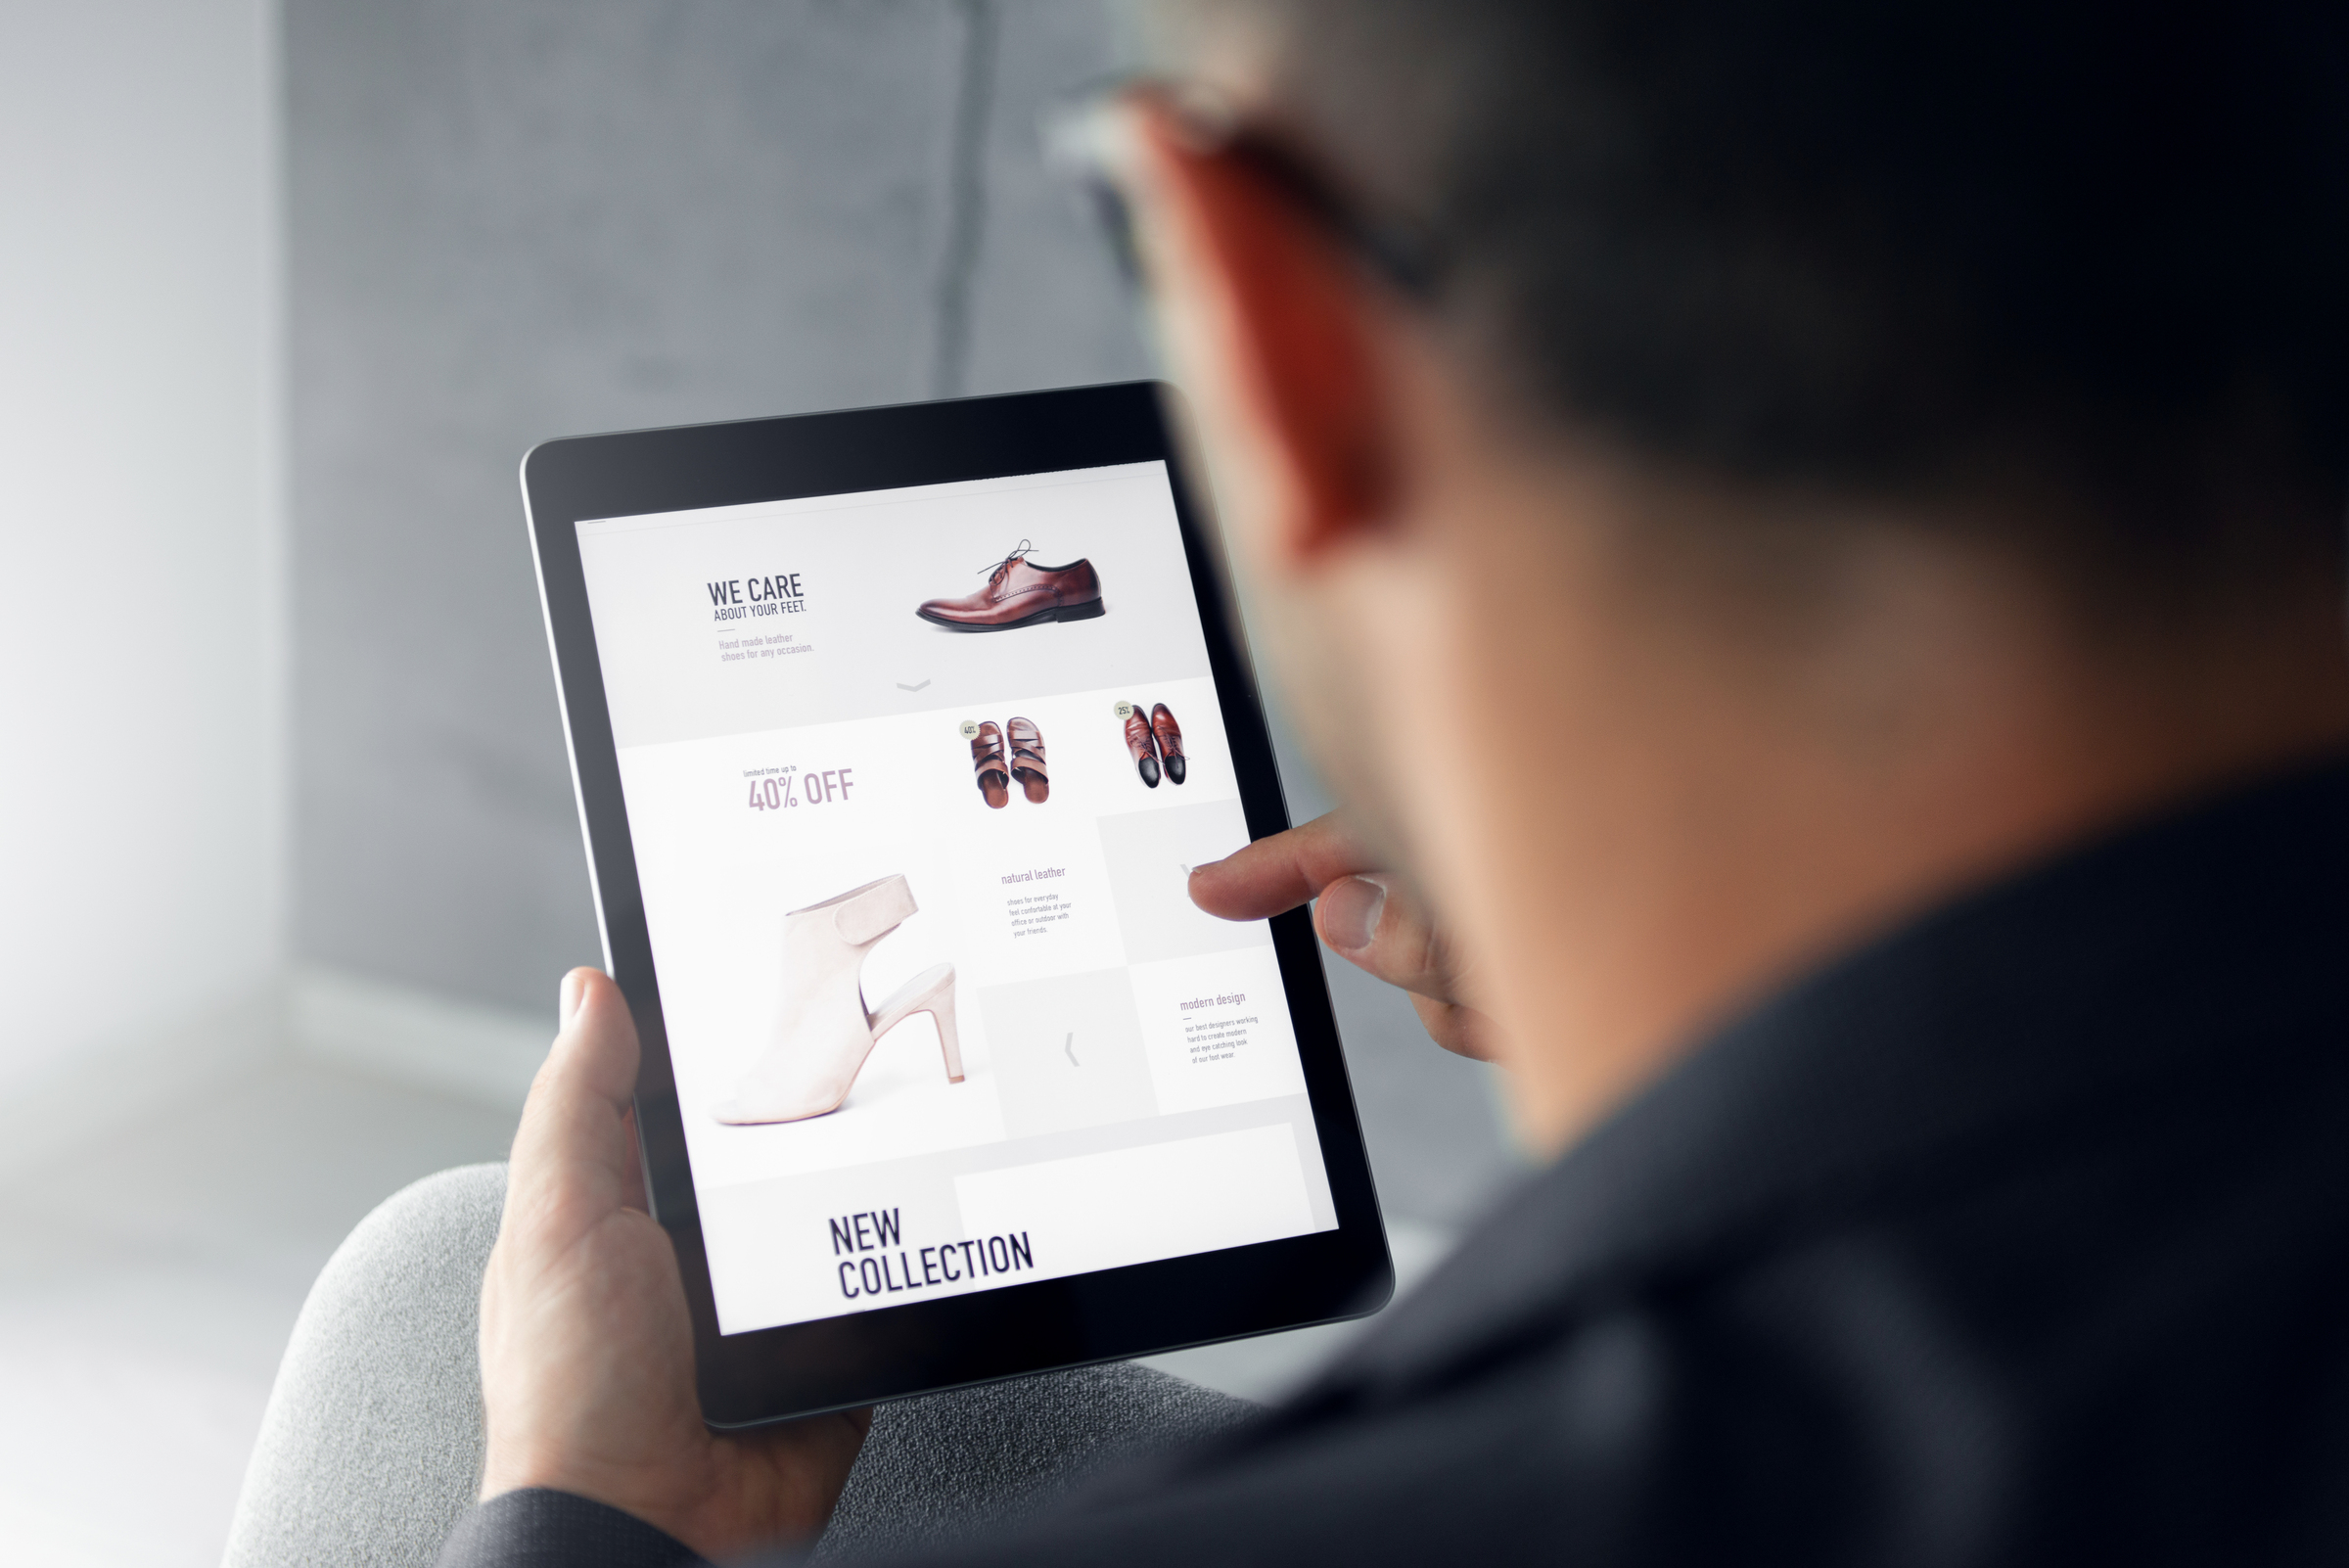 Personalized Yet Sustainable Experiences Will Redefine the New Retail Playbook in SEA